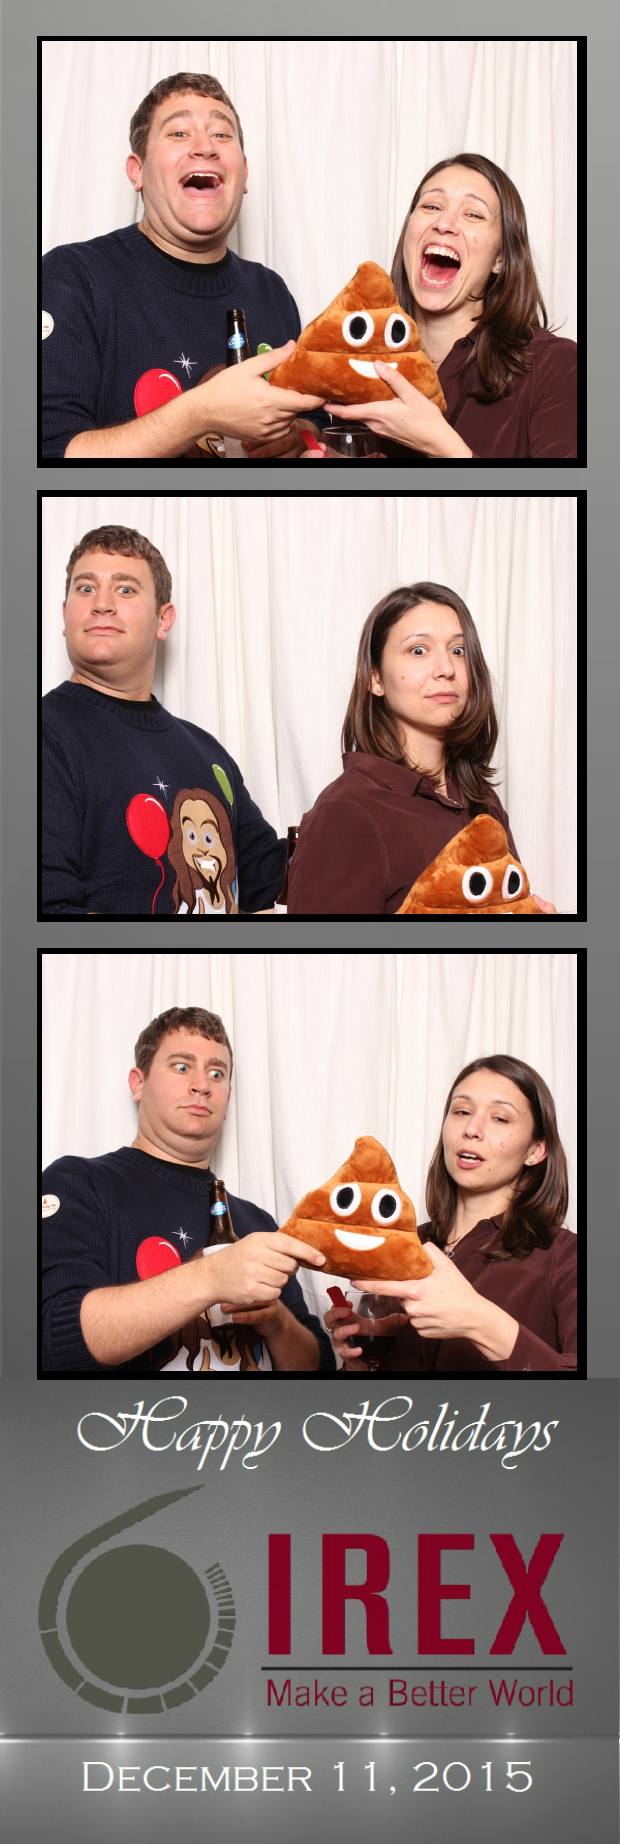 Guest House Events Photo Booth Strips IREX (65).jpg